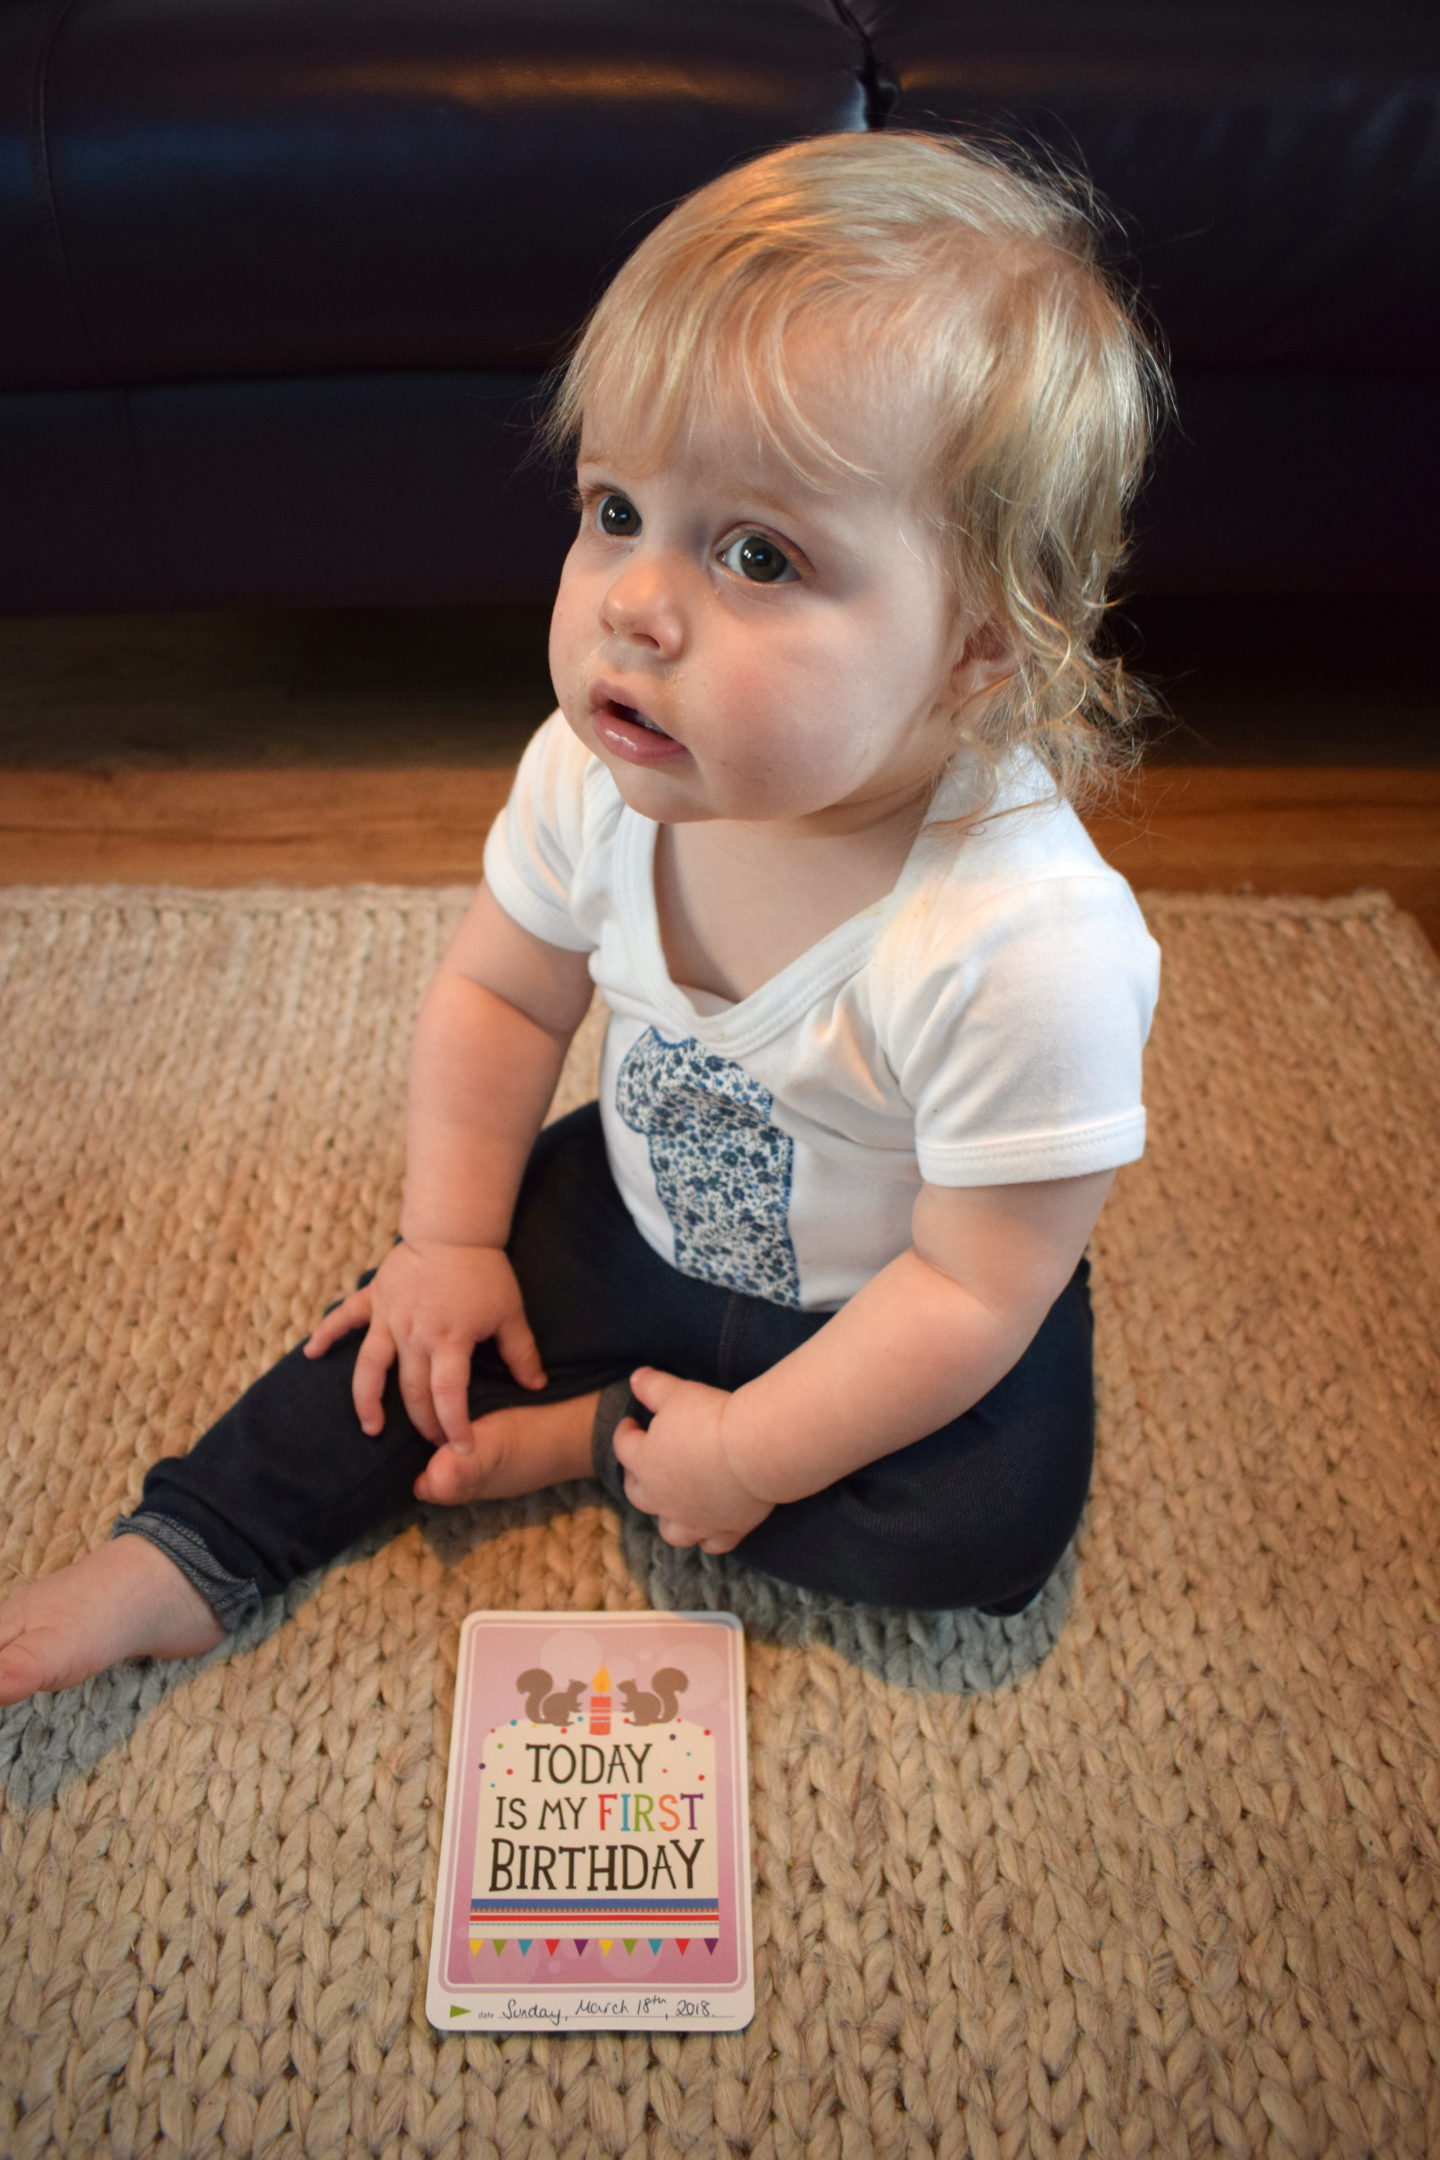 one year old girl, sitting, holding milestone card, reading today is my first birthday